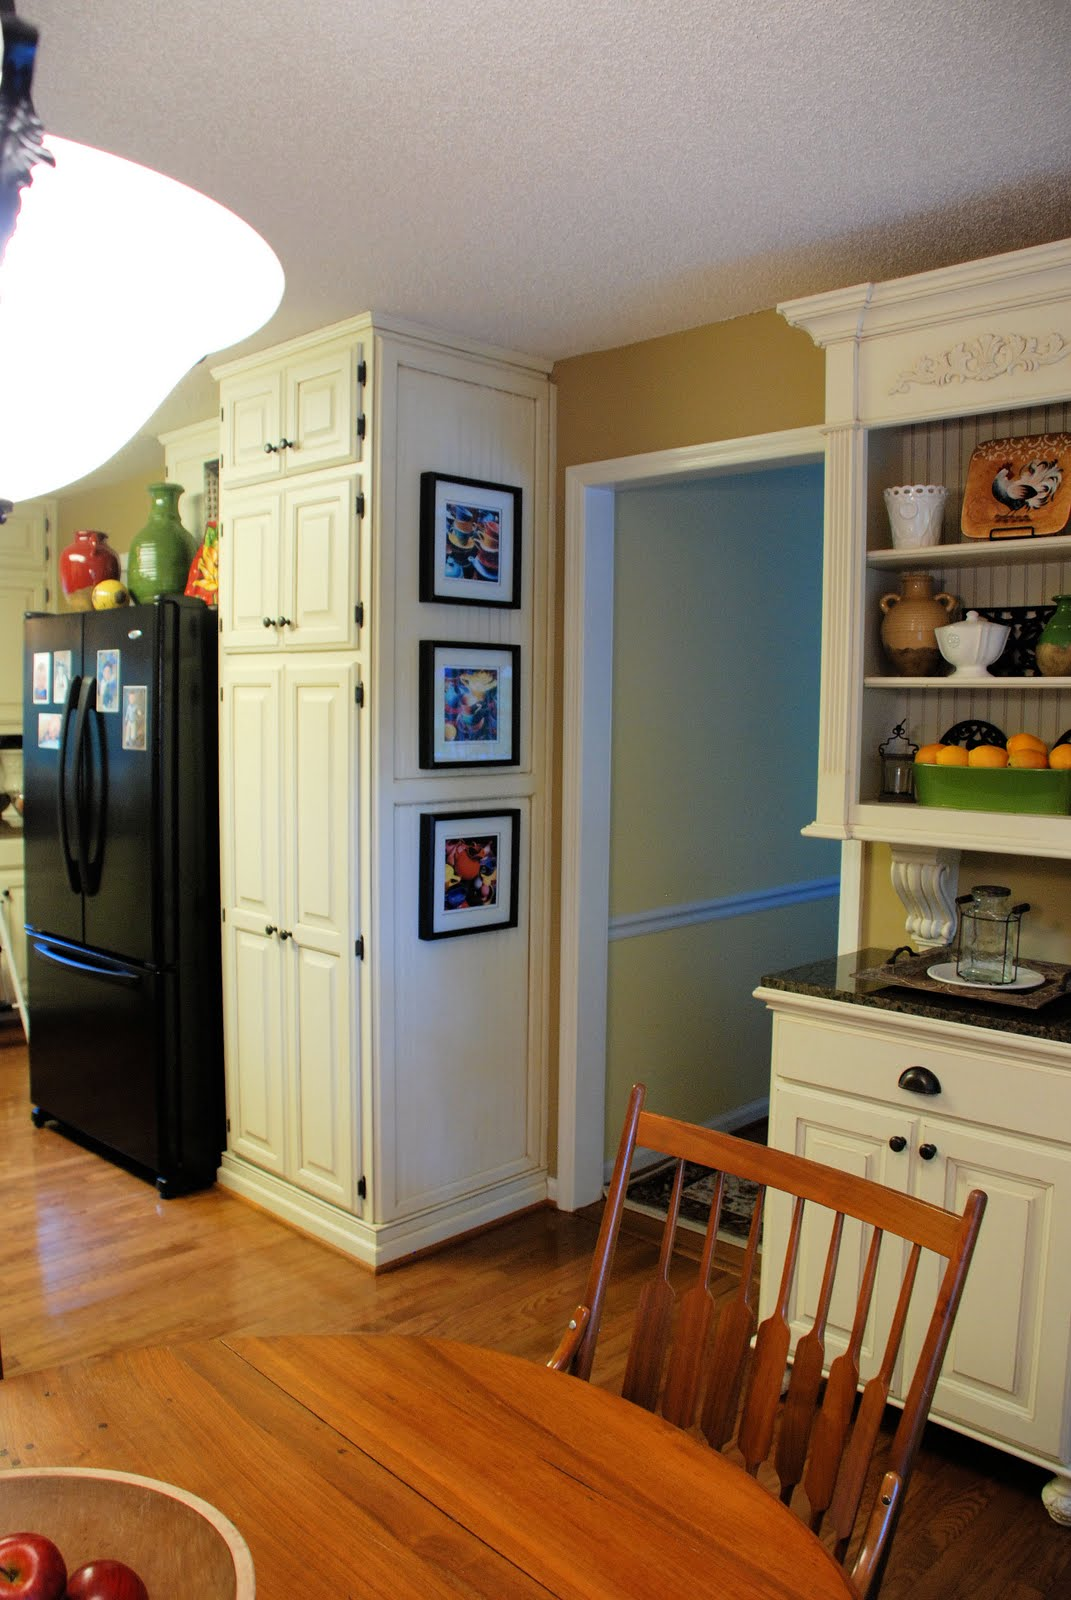 southern inspirations 80 39 s kitchen update a question for you. Black Bedroom Furniture Sets. Home Design Ideas